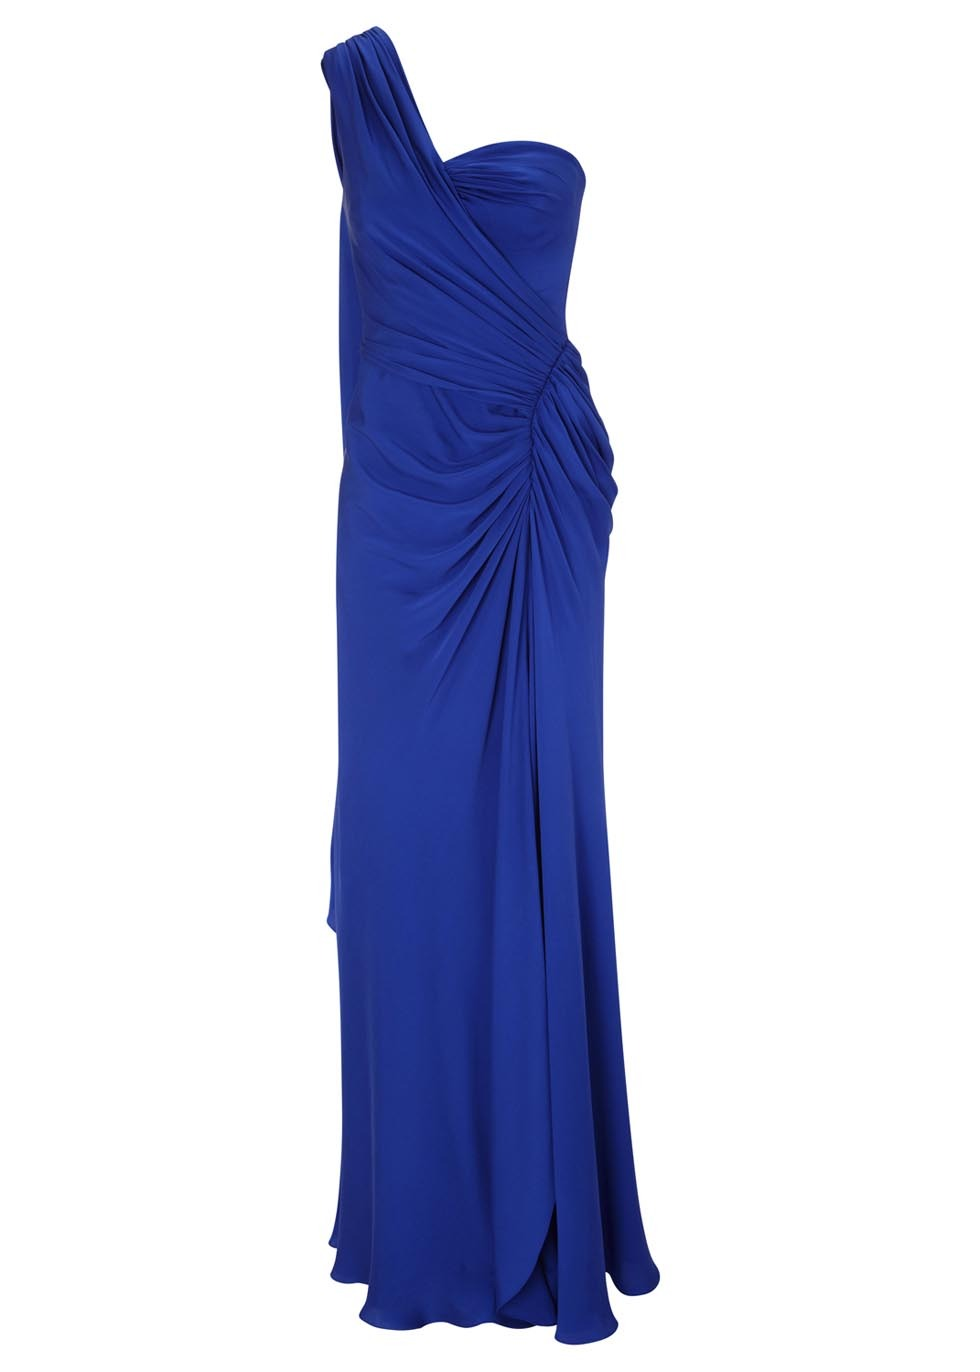 Blue One Shoulder Ruched Silk Gown - style: ballgown; pattern: plain; sleeve style: sleeveless; neckline: asymmetric; waist detail: flattering waist detail; bust detail: subtle bust detail; predominant colour: royal blue; occasions: evening, occasion; length: floor length; fit: body skimming; fibres: silk - 100%; hip detail: ruching/gathering at hip; shoulder detail: asymmetric shoulder; sleeve length: sleeveless; texture group: silky - light; pattern type: fabric; trends: powerful pleats; season: s/s 2014